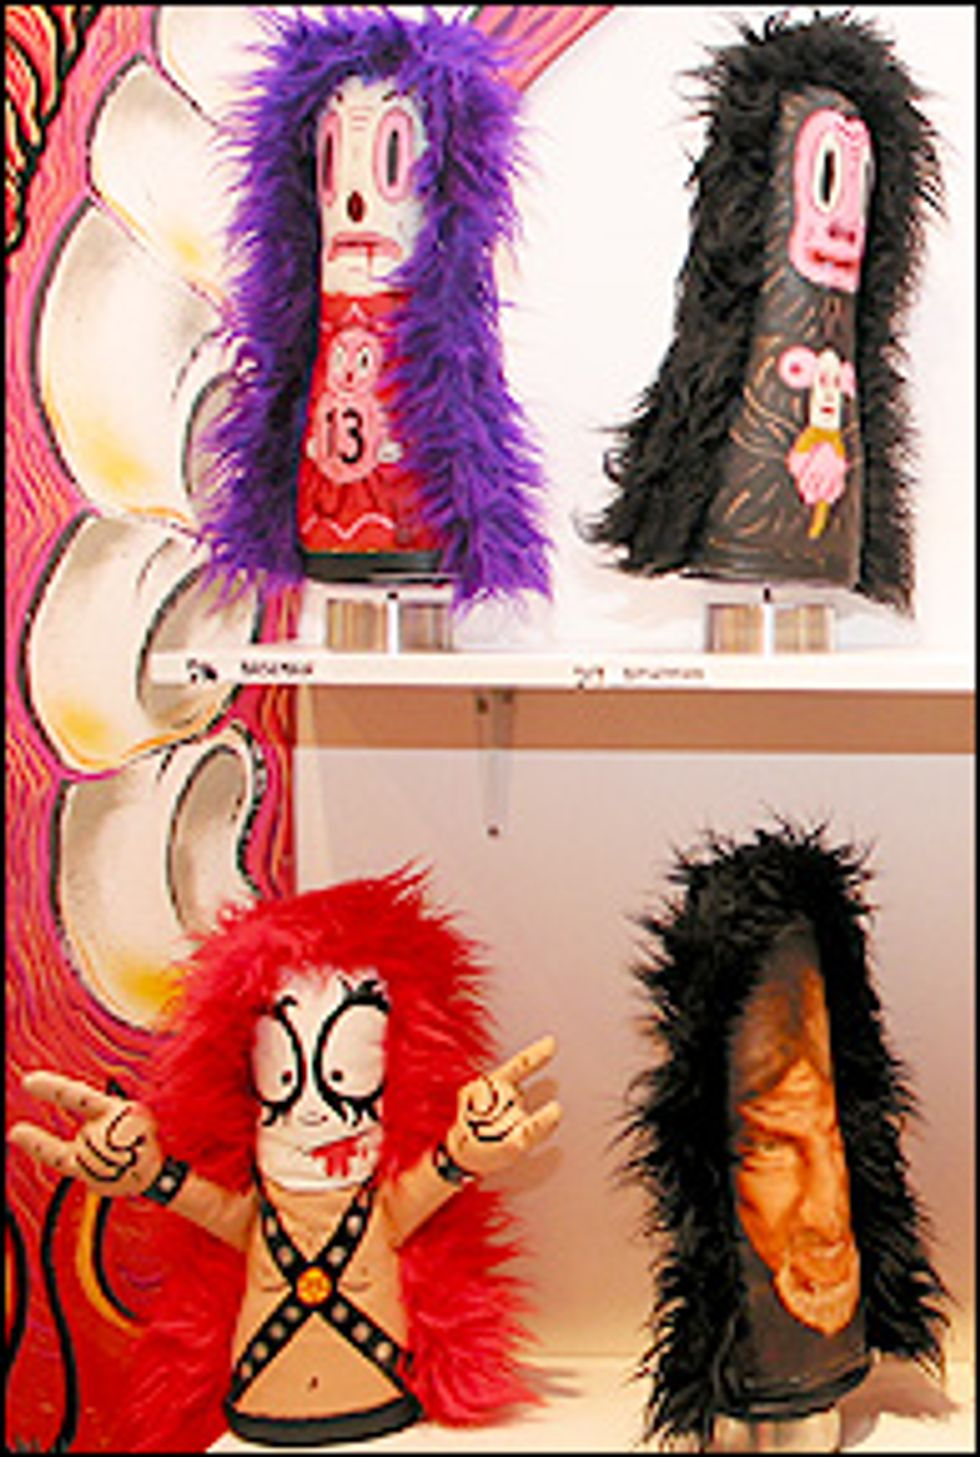 The Circus Punks Rule Show at Toy Tokyo